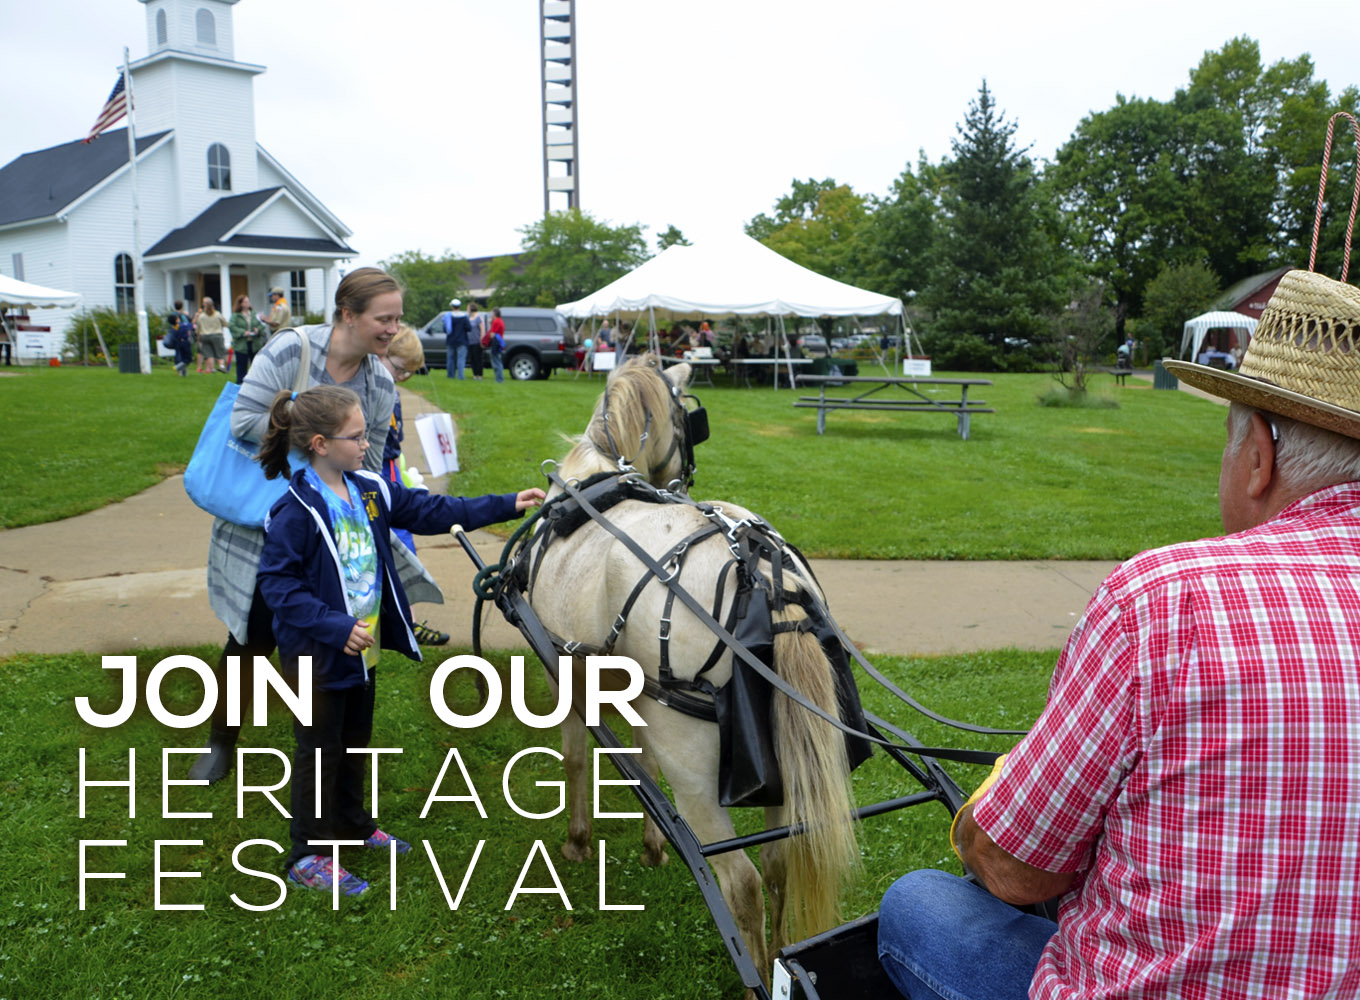 Join Our Heritage Festival